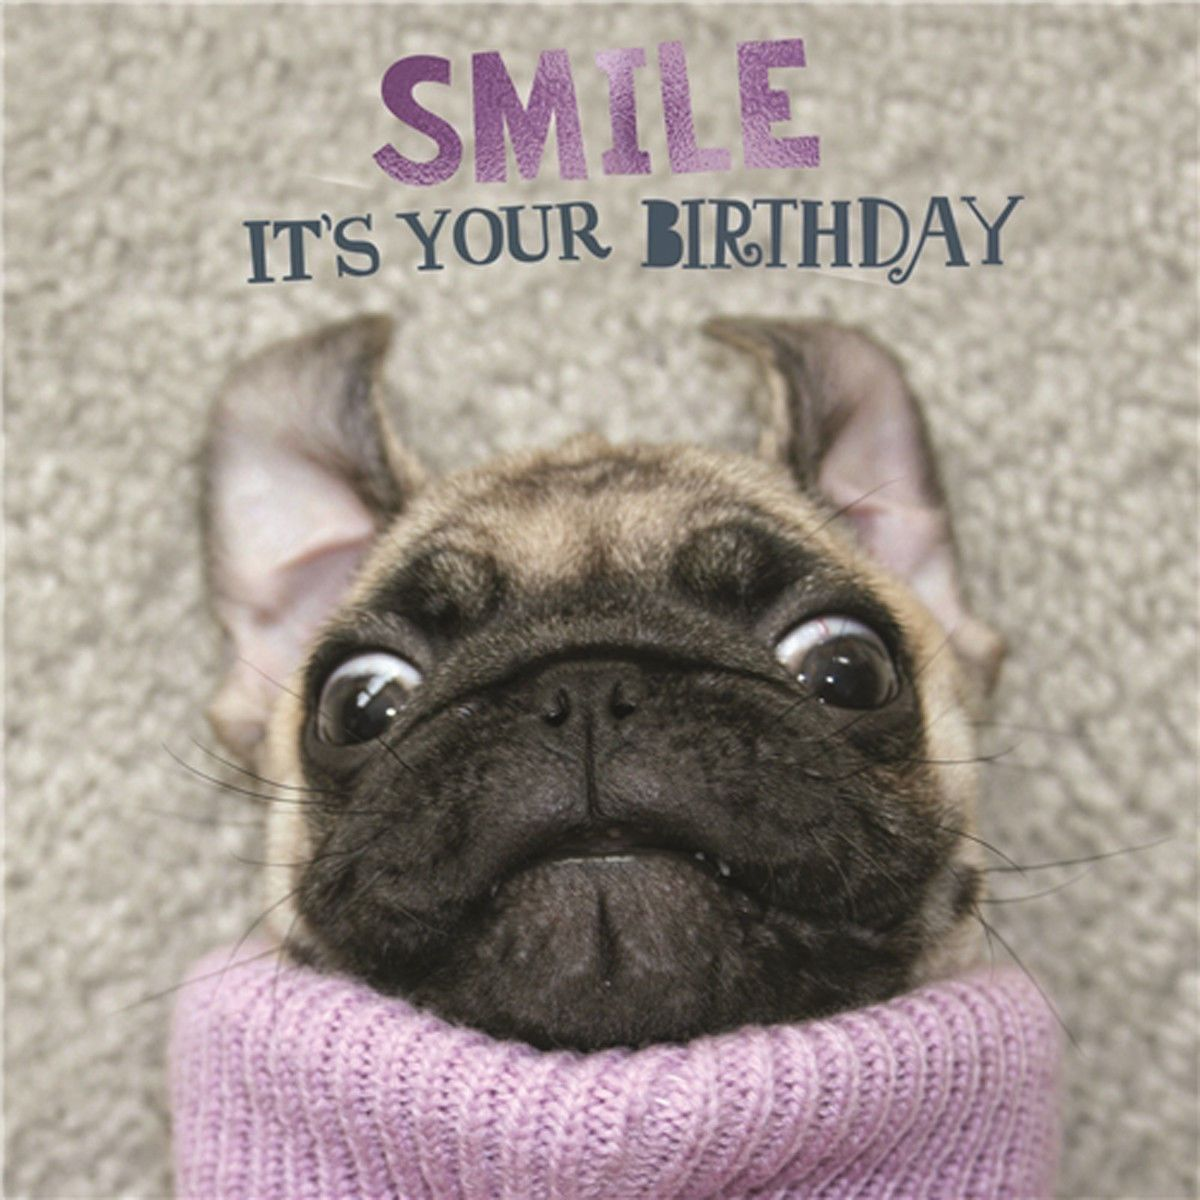 Funny Pug Birthday Card Available At Ilovepugscouk Post Worldwide